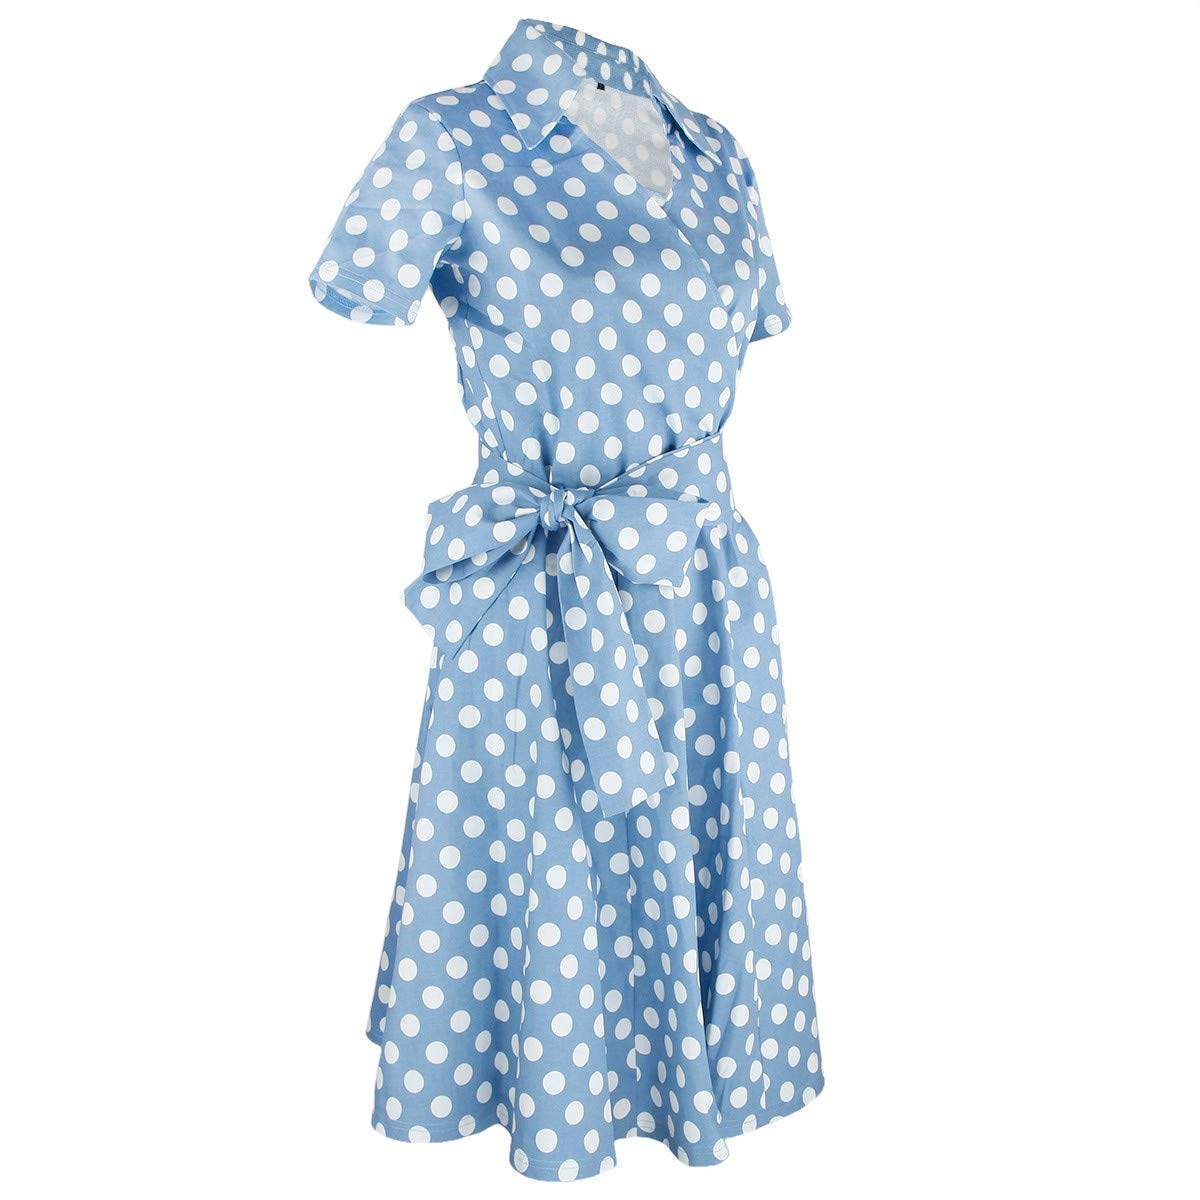 3style 2 (Polka Dot) moonsix Women's Retro Casual Dresses V Neck Vintage ALine Plaid Dress with Short Sleeves